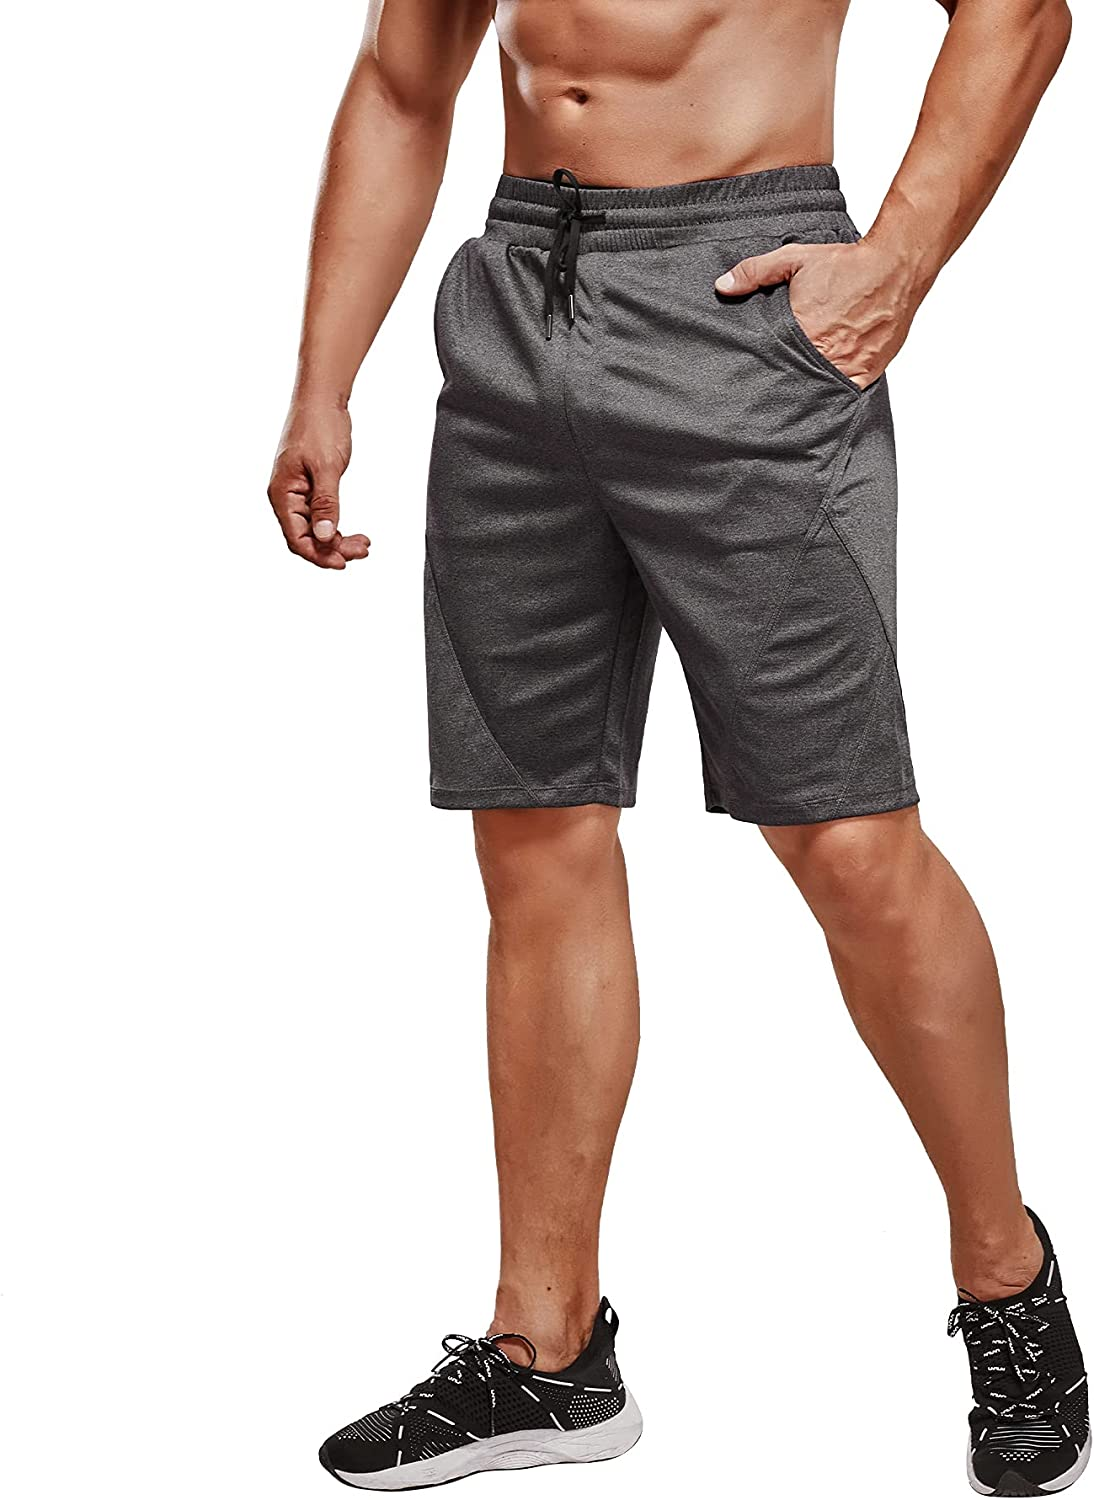 HAENPISY Mens Athletic Shorts Gym Zipper with Poc sold out outlet Workout